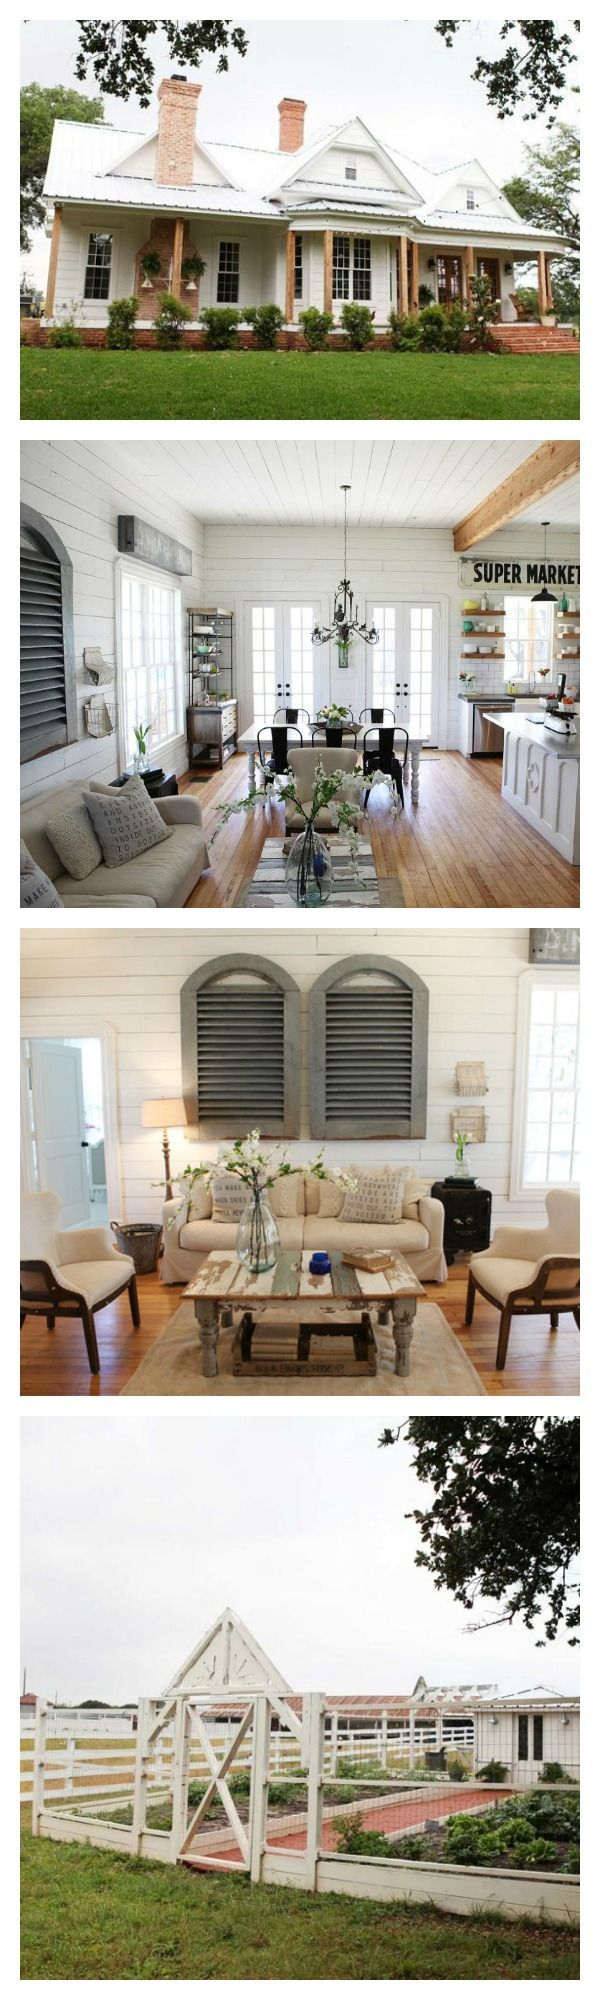 tour chip and joanna gaines 39 farmhouse like you 39 ve never seen it before amerikanische h user. Black Bedroom Furniture Sets. Home Design Ideas